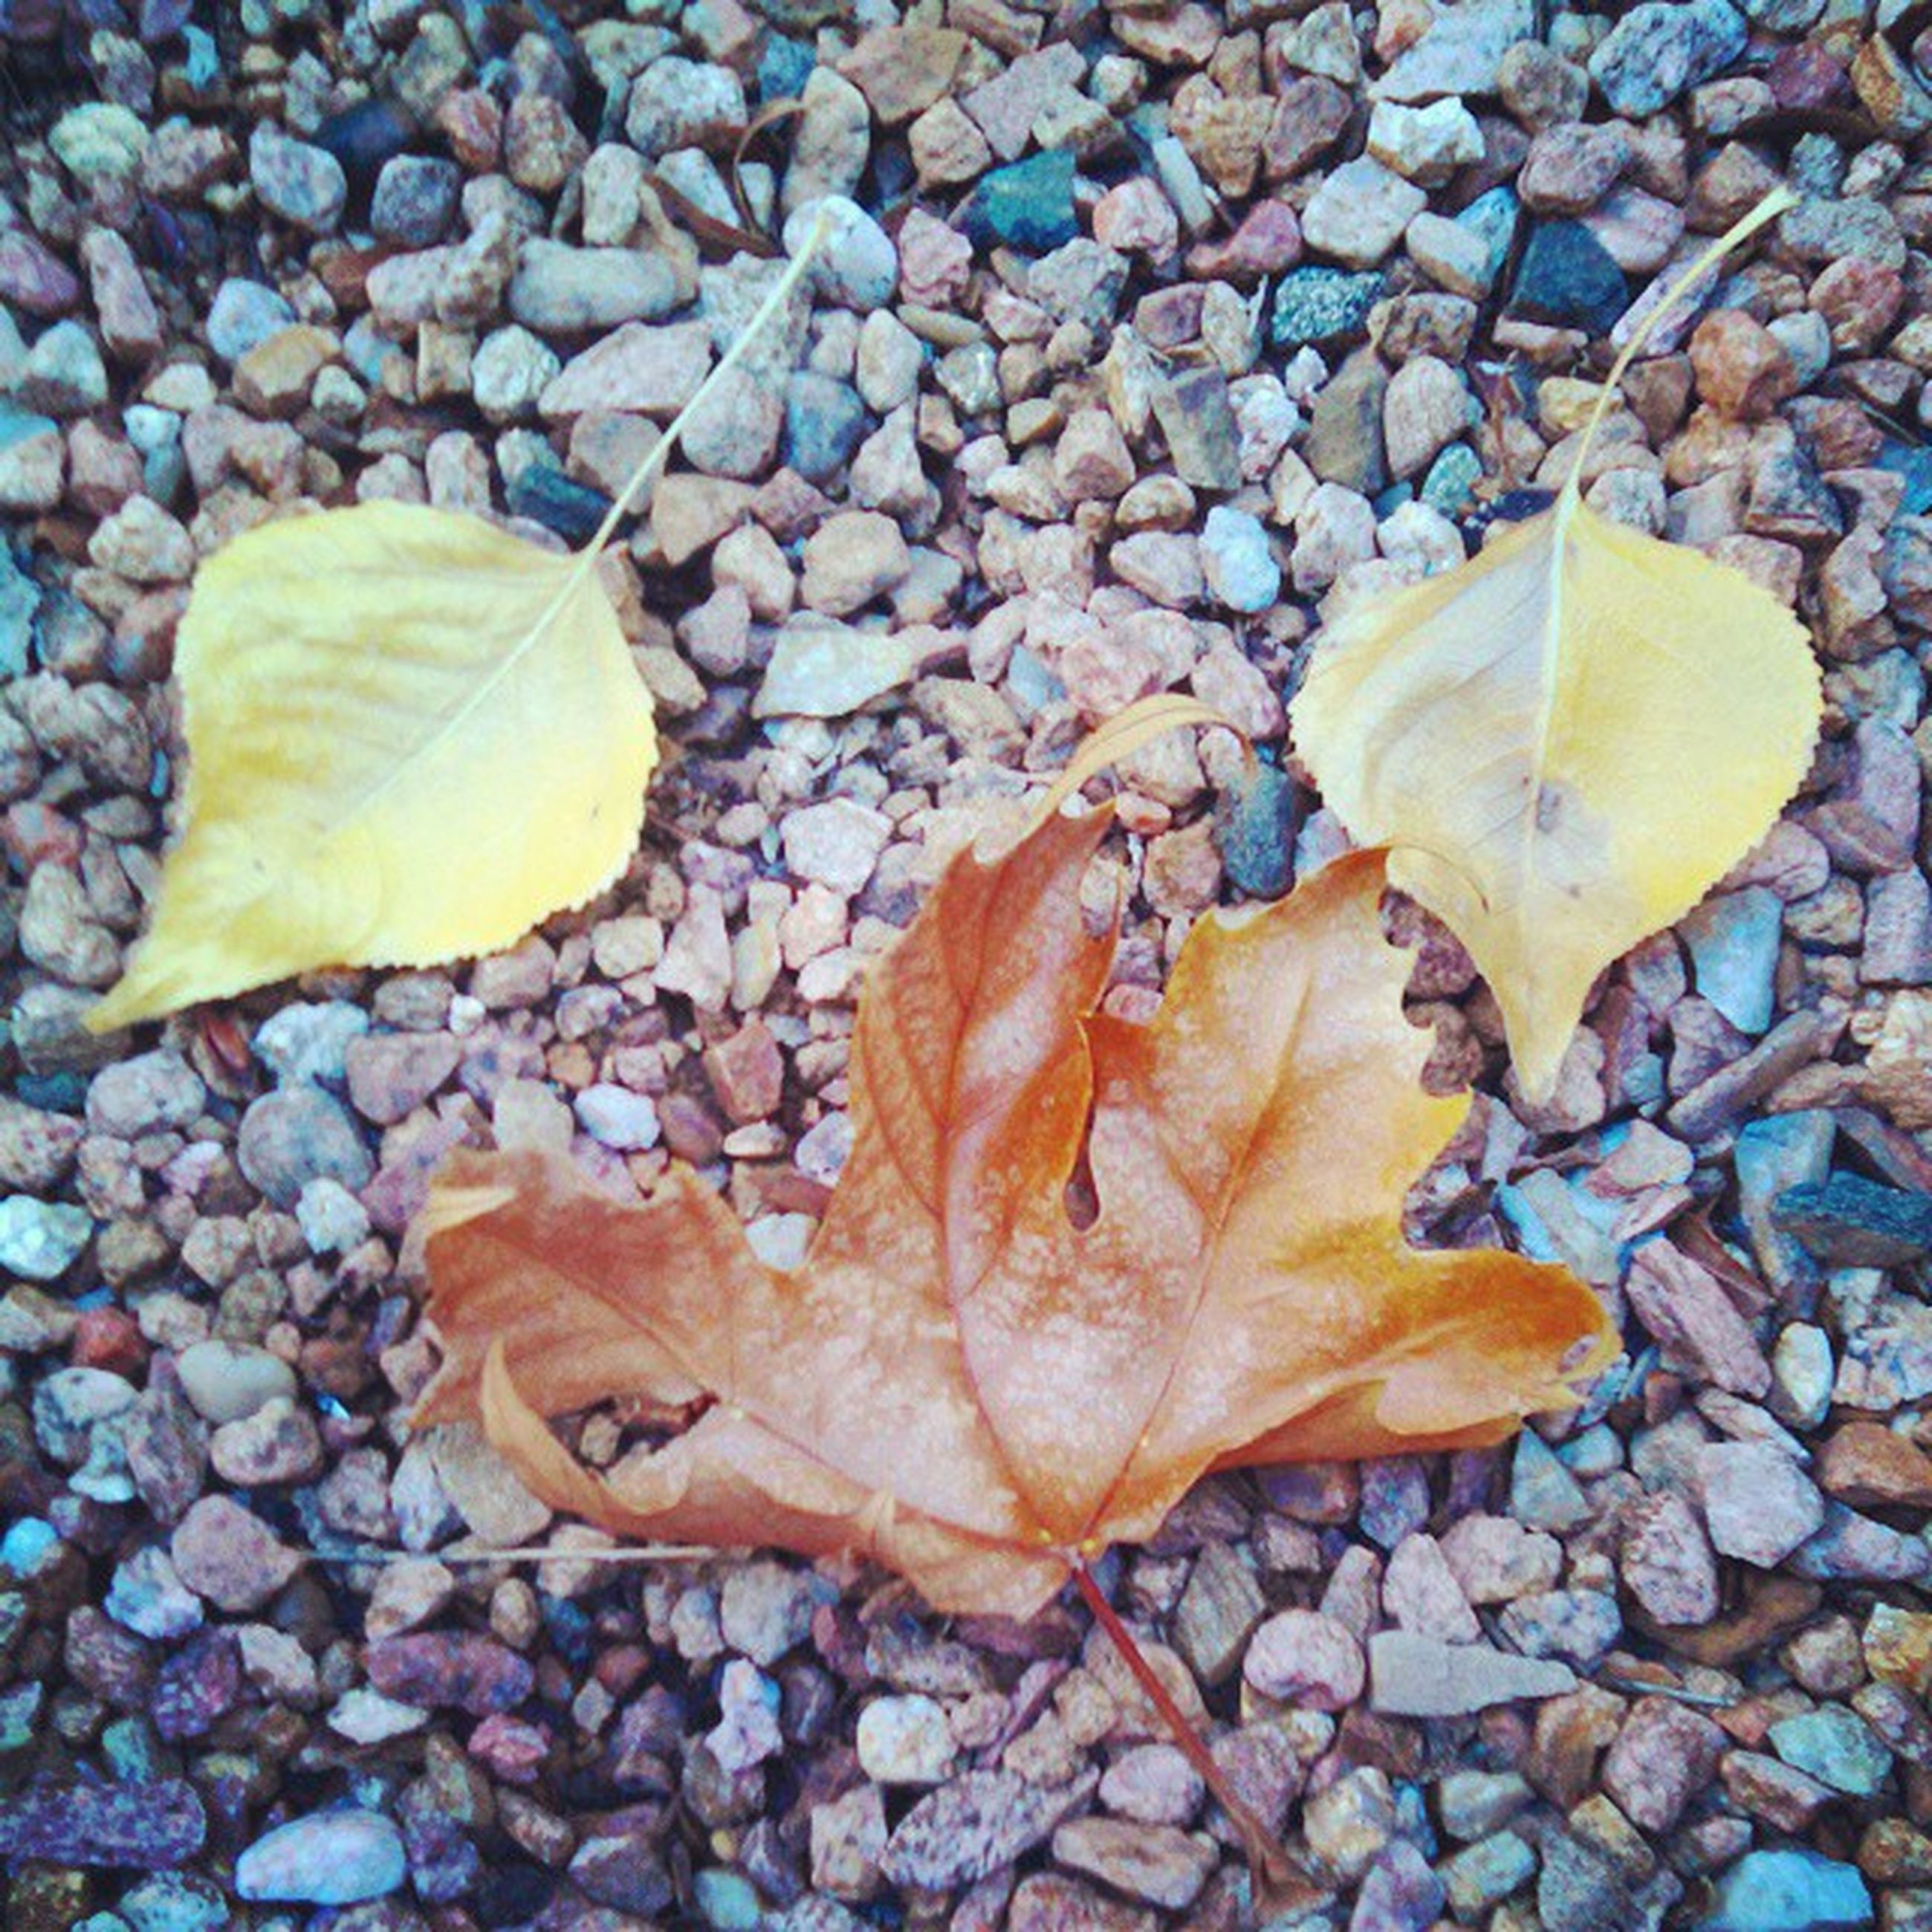 leaf, autumn, change, dry, leaves, season, leaf vein, fallen, nature, high angle view, natural pattern, abundance, close-up, day, wet, outdoors, fragility, beauty in nature, stone - object, backgrounds